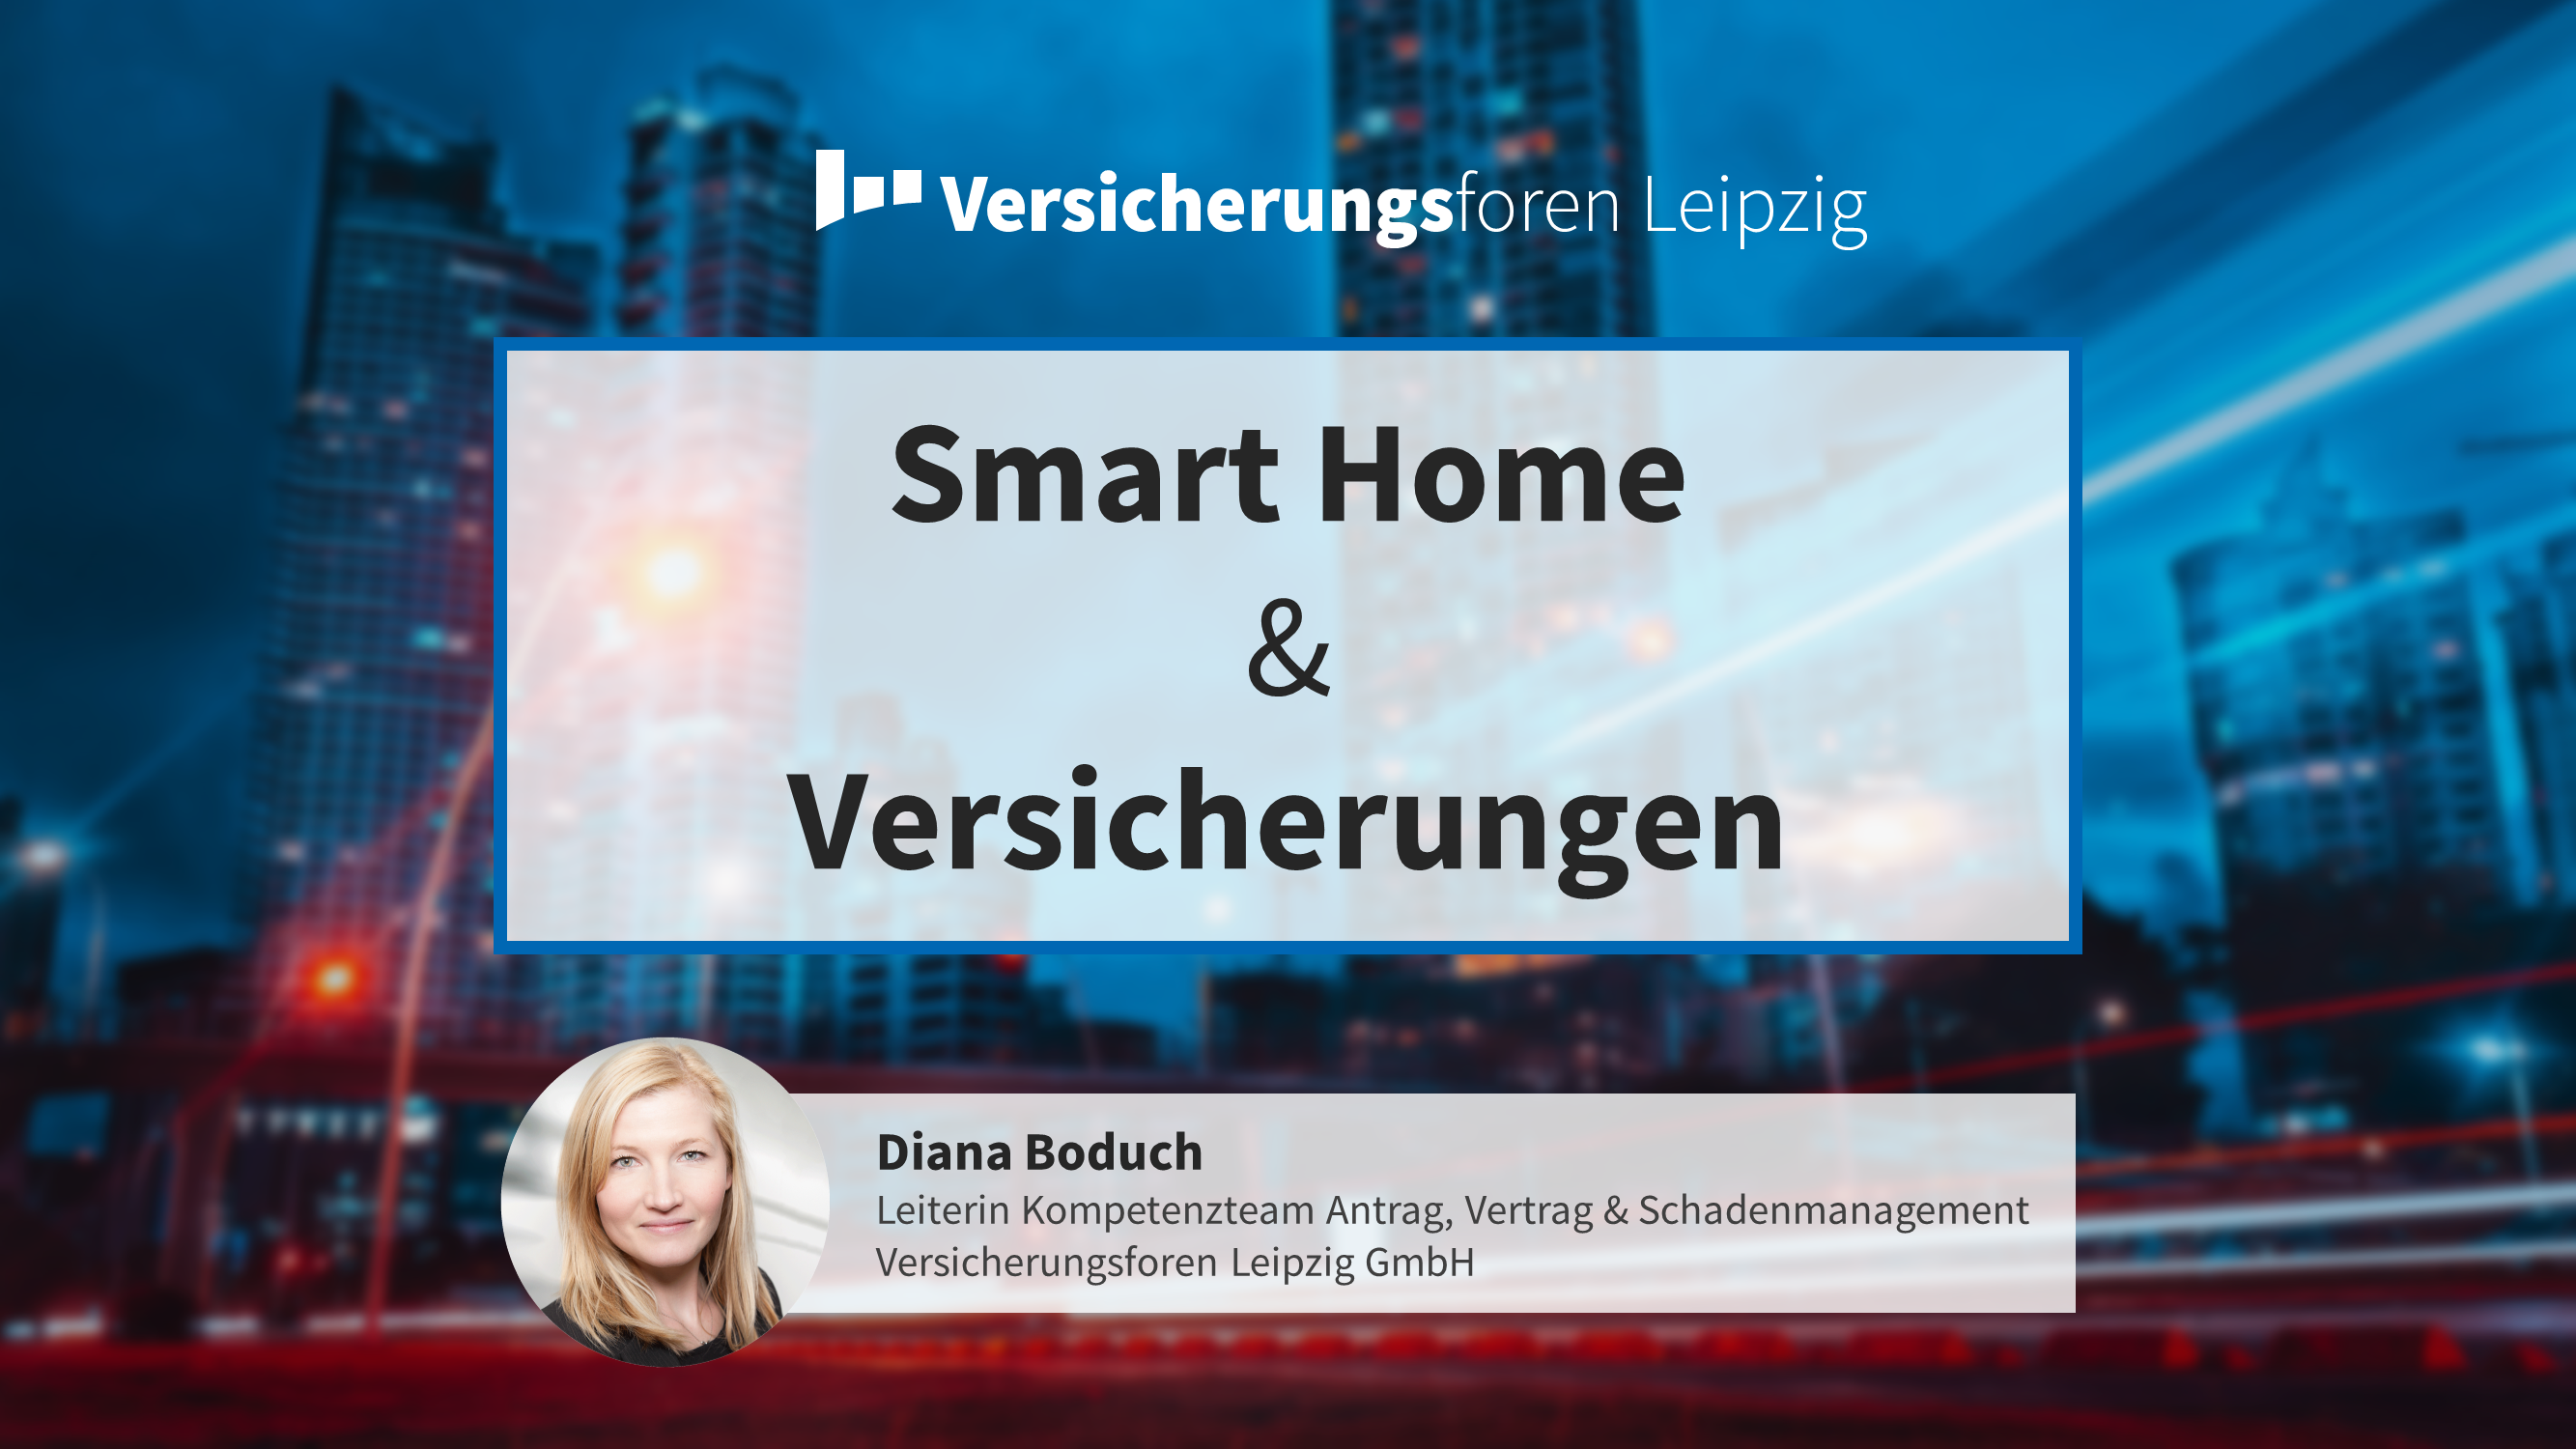 Smart Home & Versicherungen